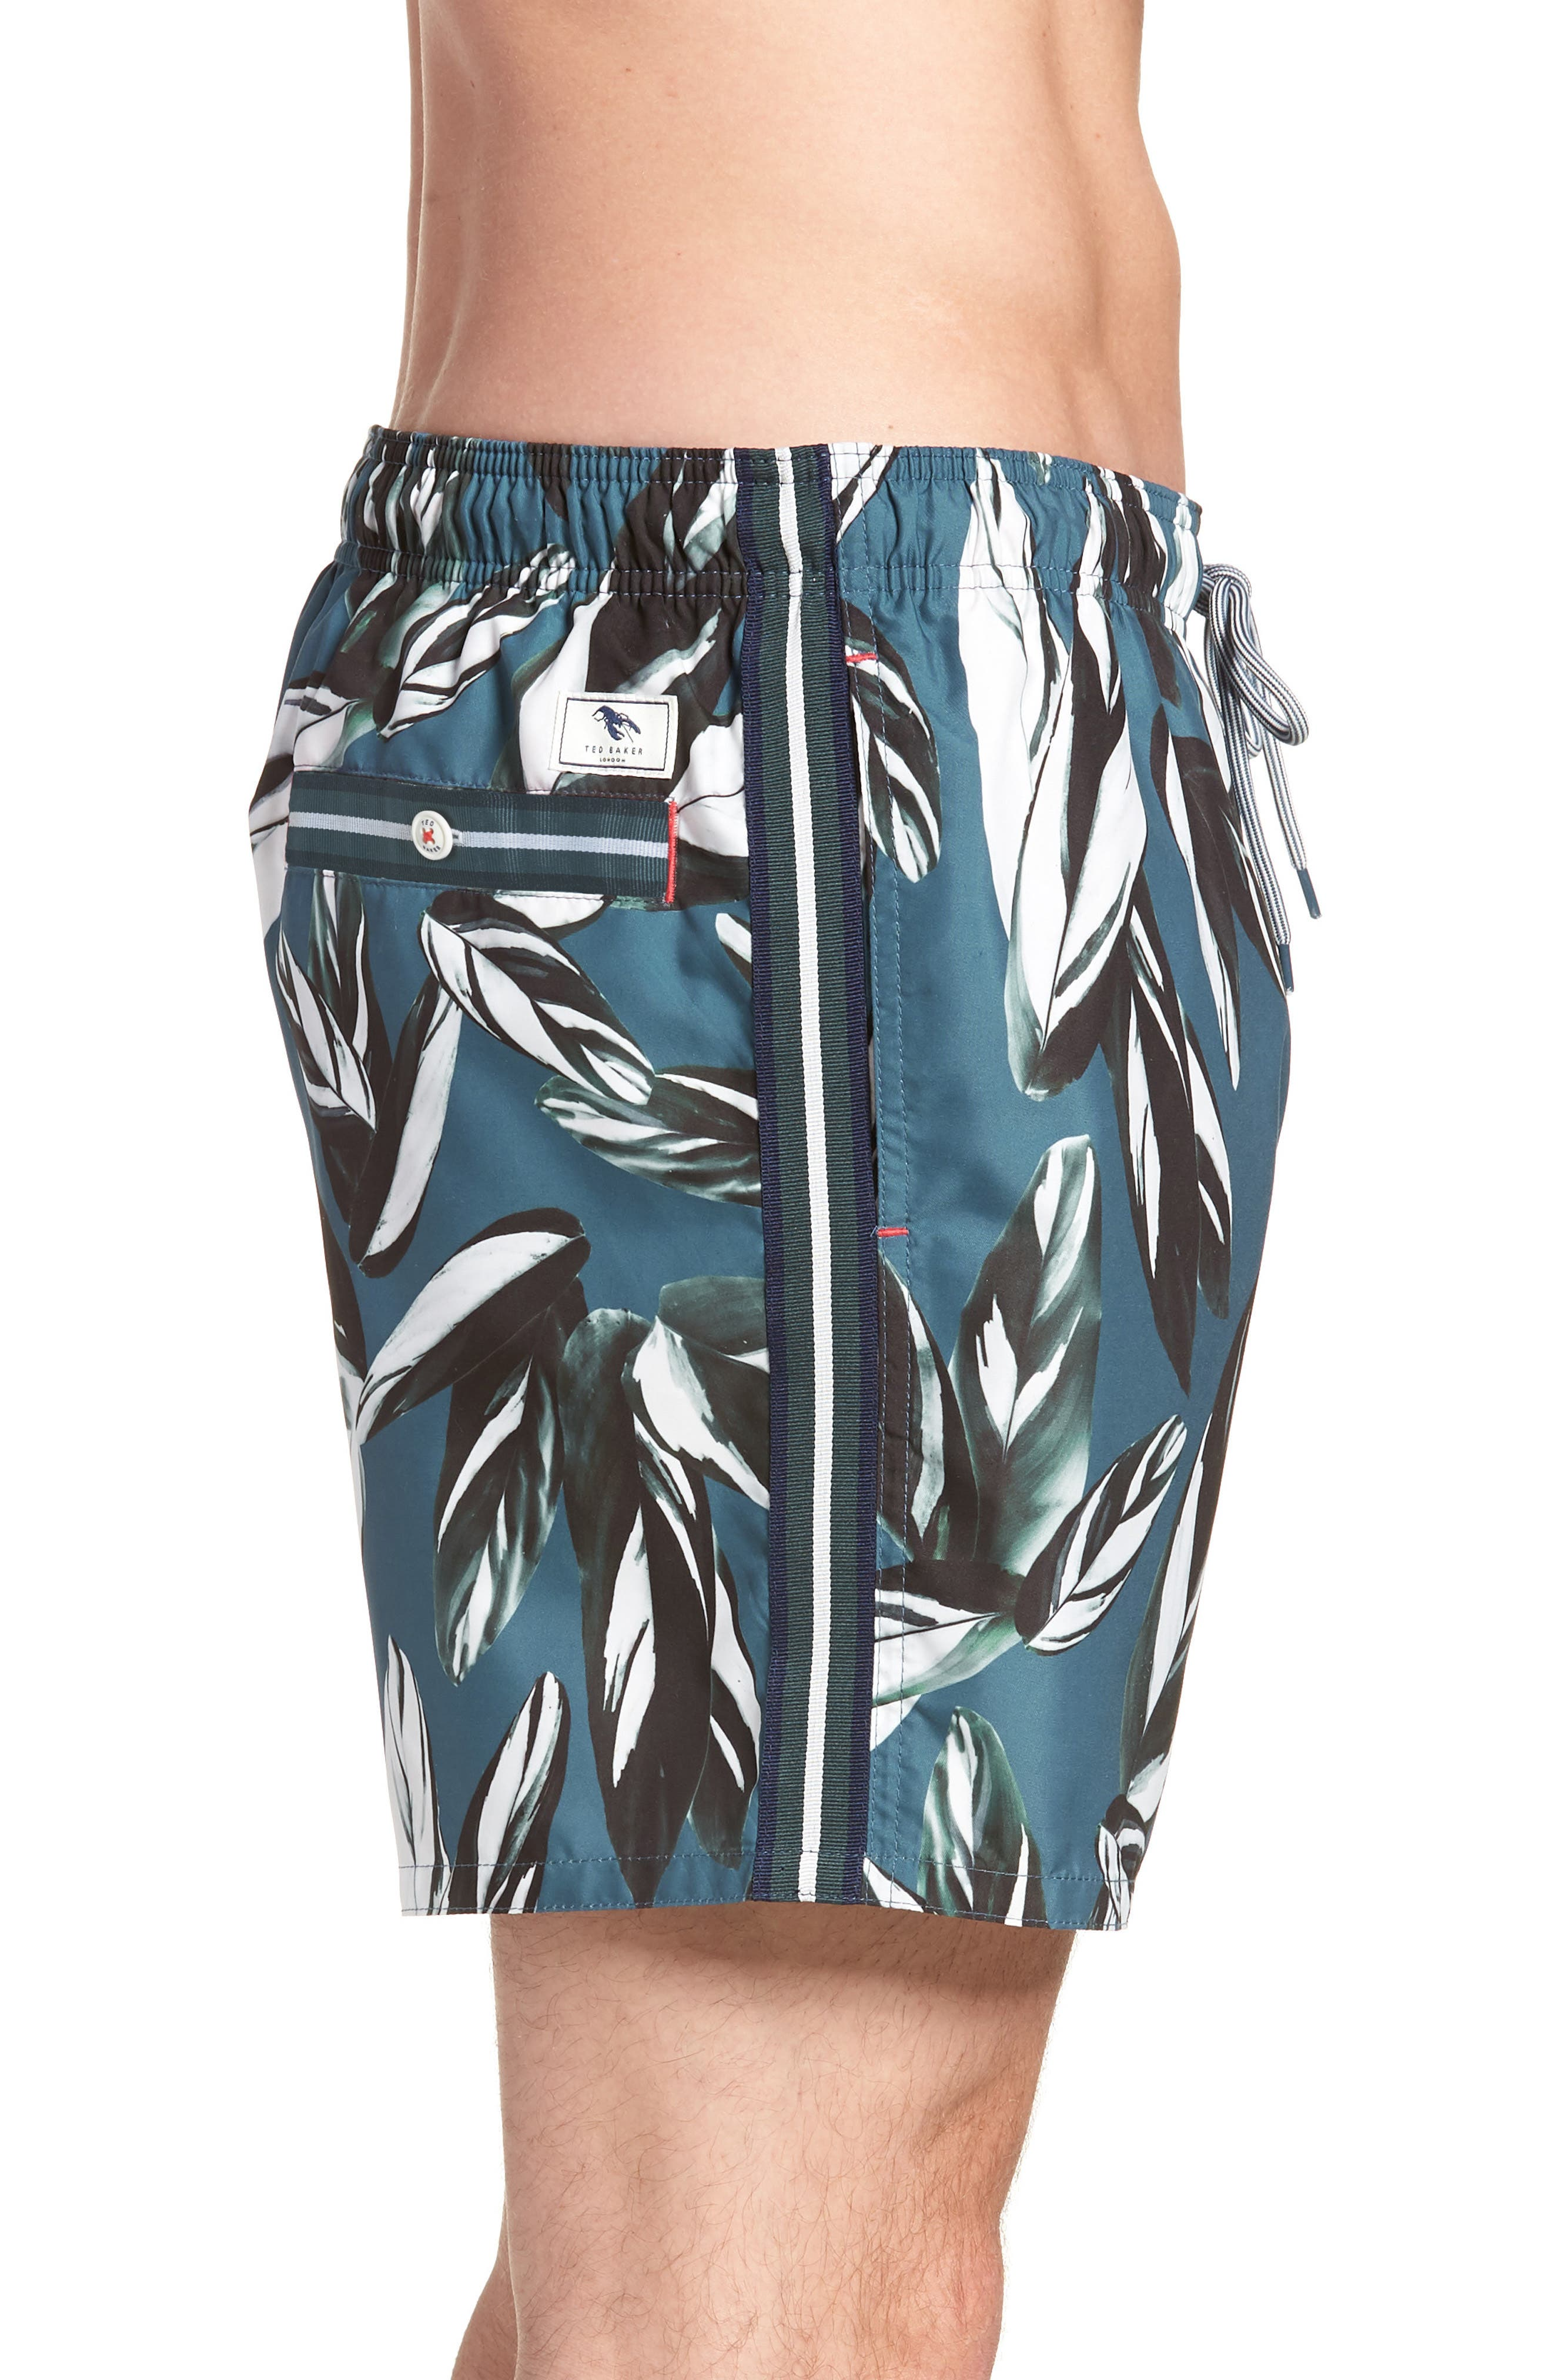 Bury Leaf Print Swim Shorts,                             Alternate thumbnail 4, color,                             440